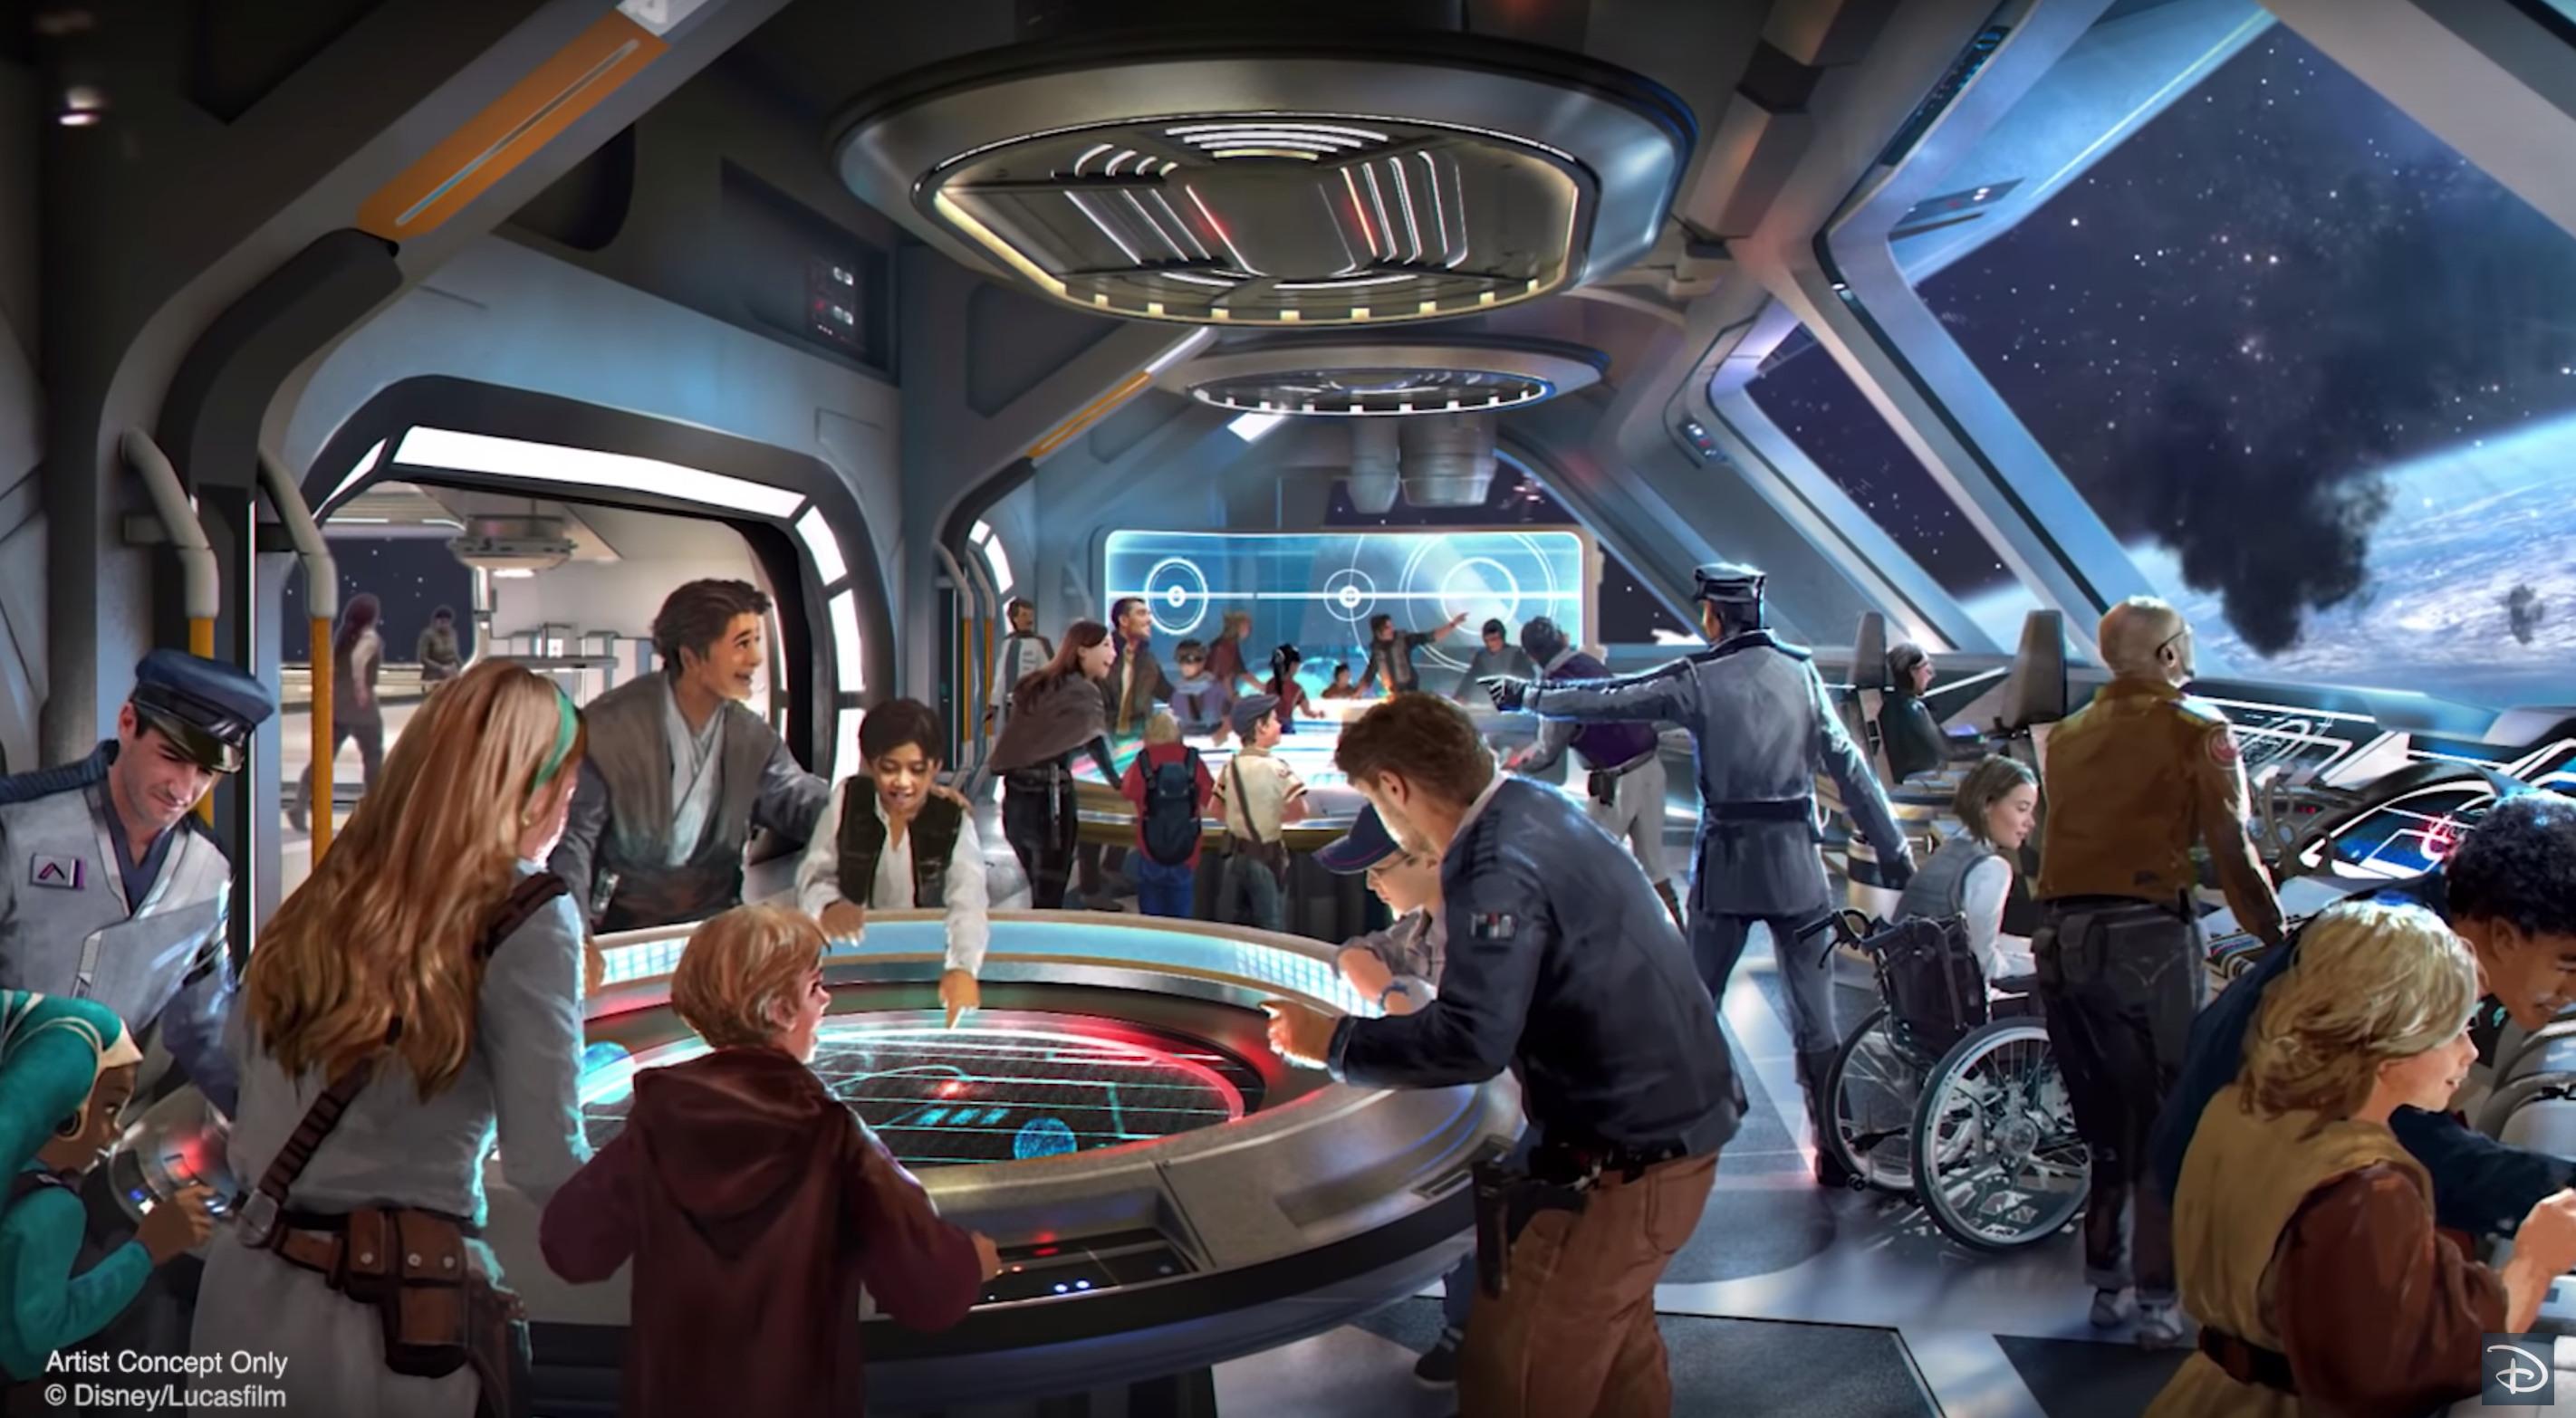 The pricing for Disney World's new Galactic Starcruiser Star Wars hotel have finally been released.